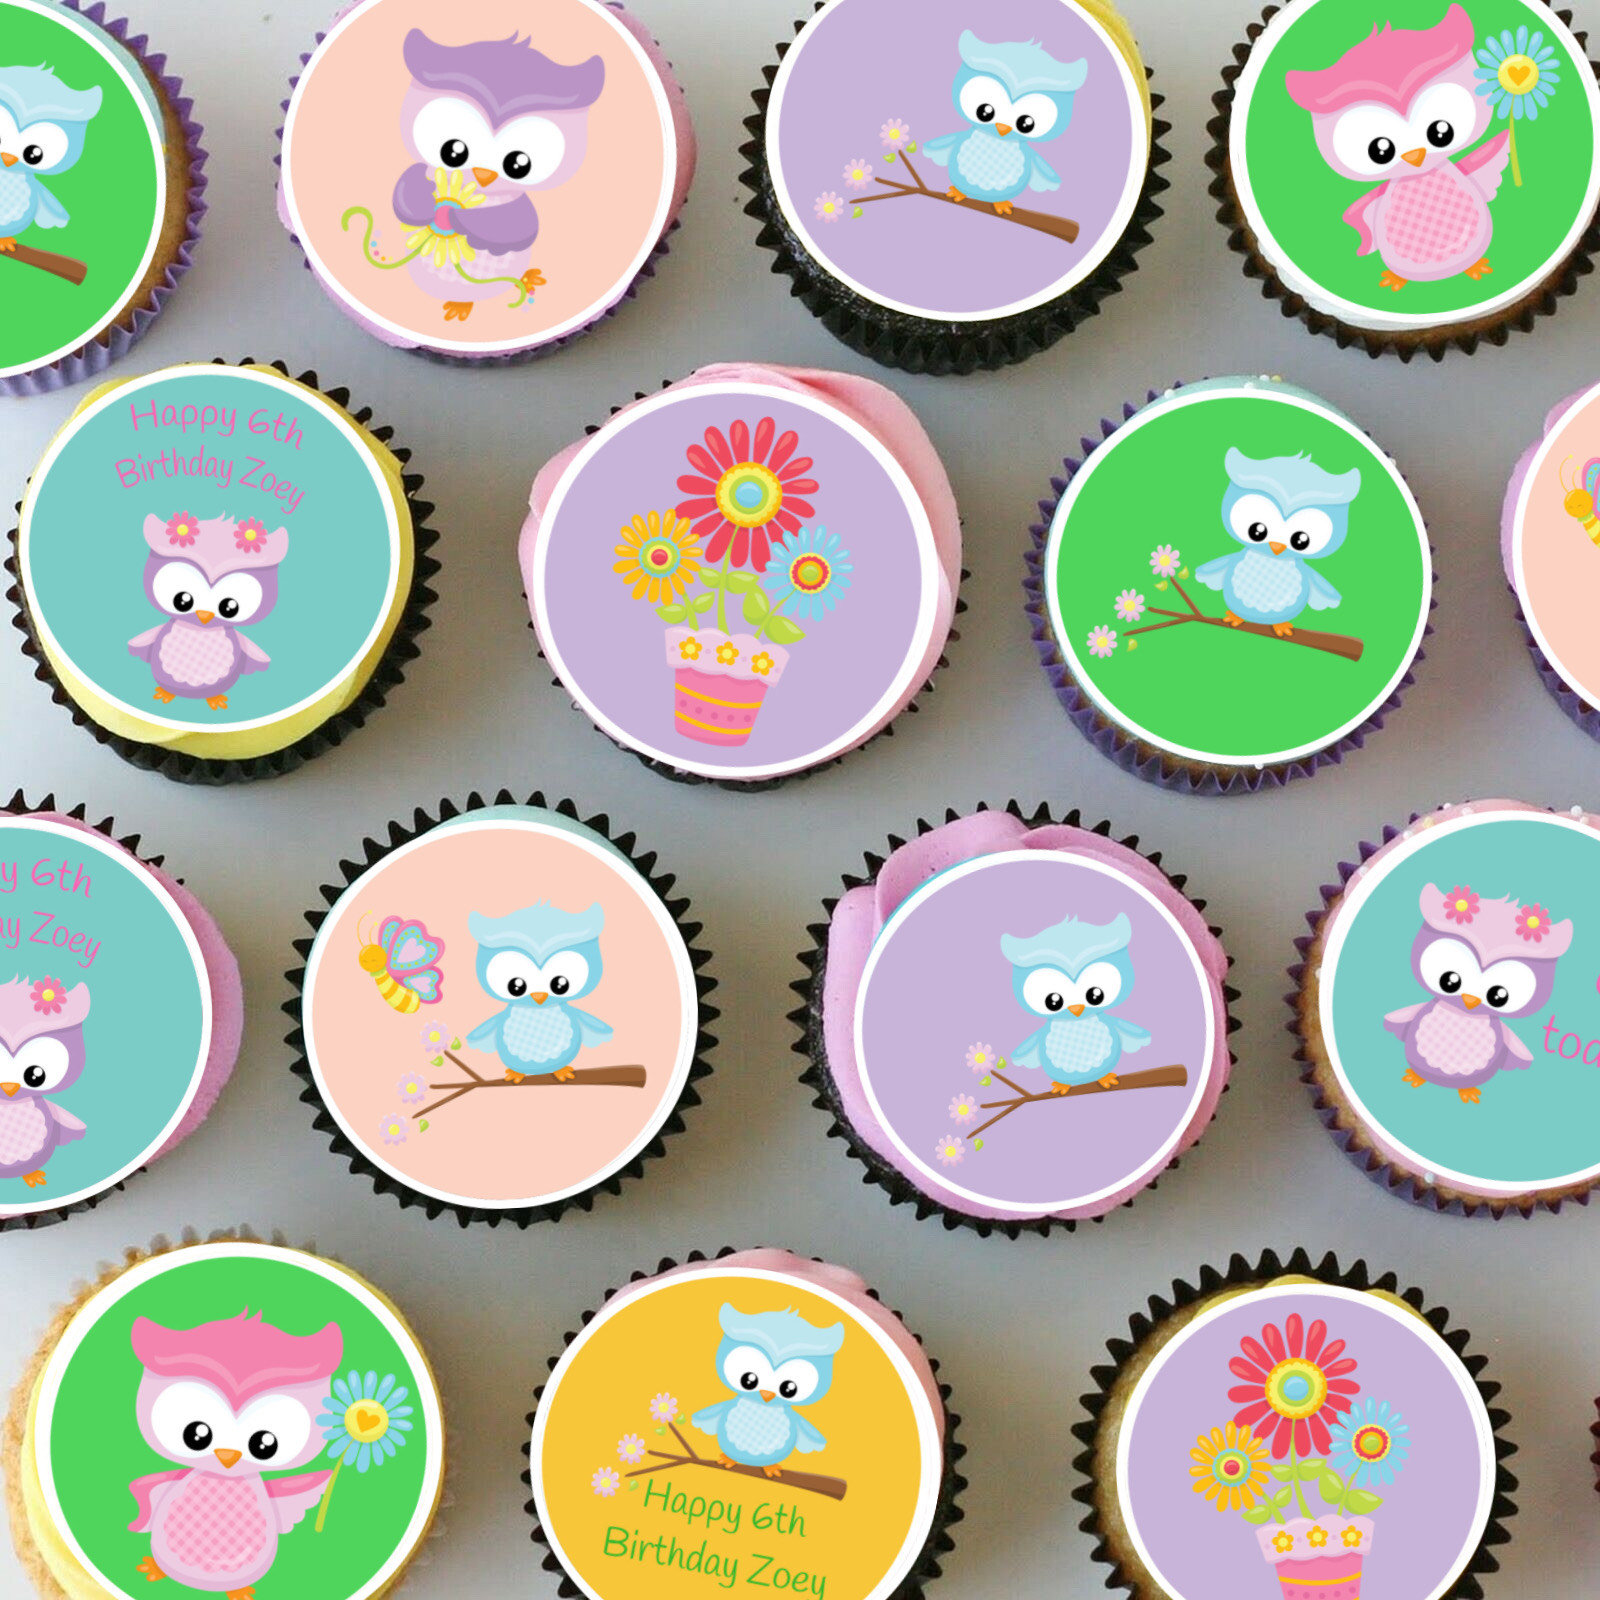 Tremendous Owl Birthday Cupcake Toppers Sweet Spot Creations Personalised Birthday Cards Sponlily Jamesorg